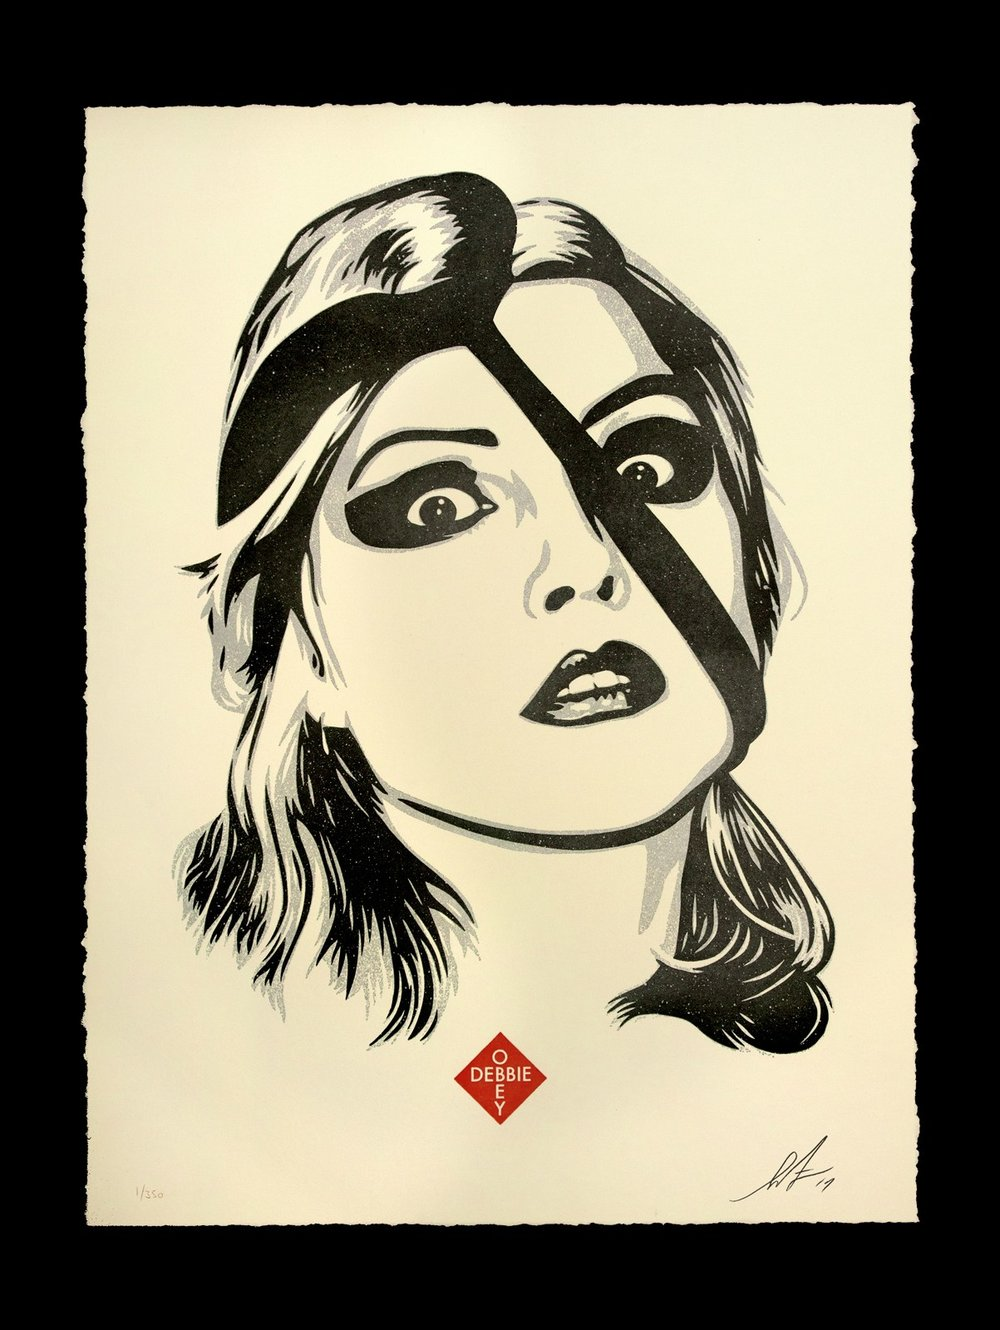 Debbie Harry, Doom. 13 x 17 inches. Letterpress on 100% cotton archival paper with hand-deckled edges. Signed by Shepard Fairey. Numbered edition of 350. $75 per print. $150 per set. A limited number of this print will be available Saturday, August 12 at 12 PM (PDT) at the OBEY Zine Newsstand (7400 Melrose Ave) in Los Angeles. The rest available Tuesday, August 15 at 10 AM (PDT) on ObeyGiant.com in Store under Prints. Limit 1 per person/household.